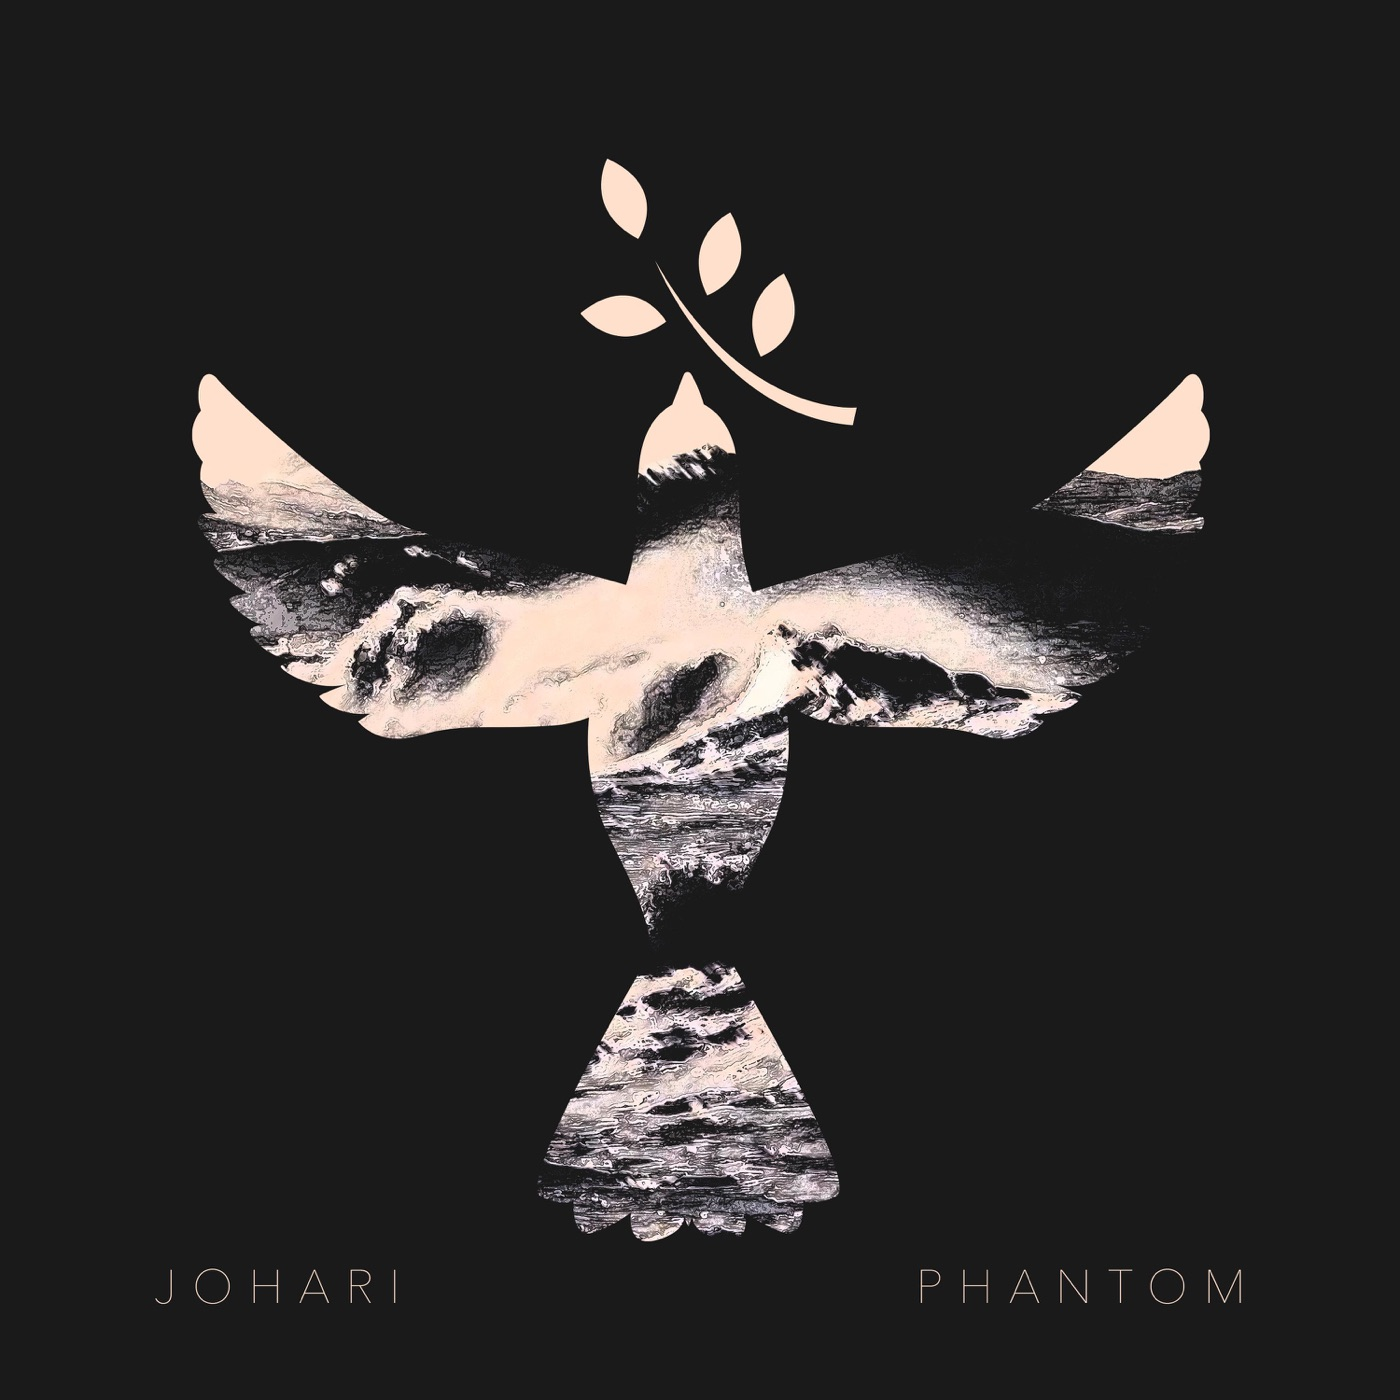 Johari - Phantom [Single] (2019)